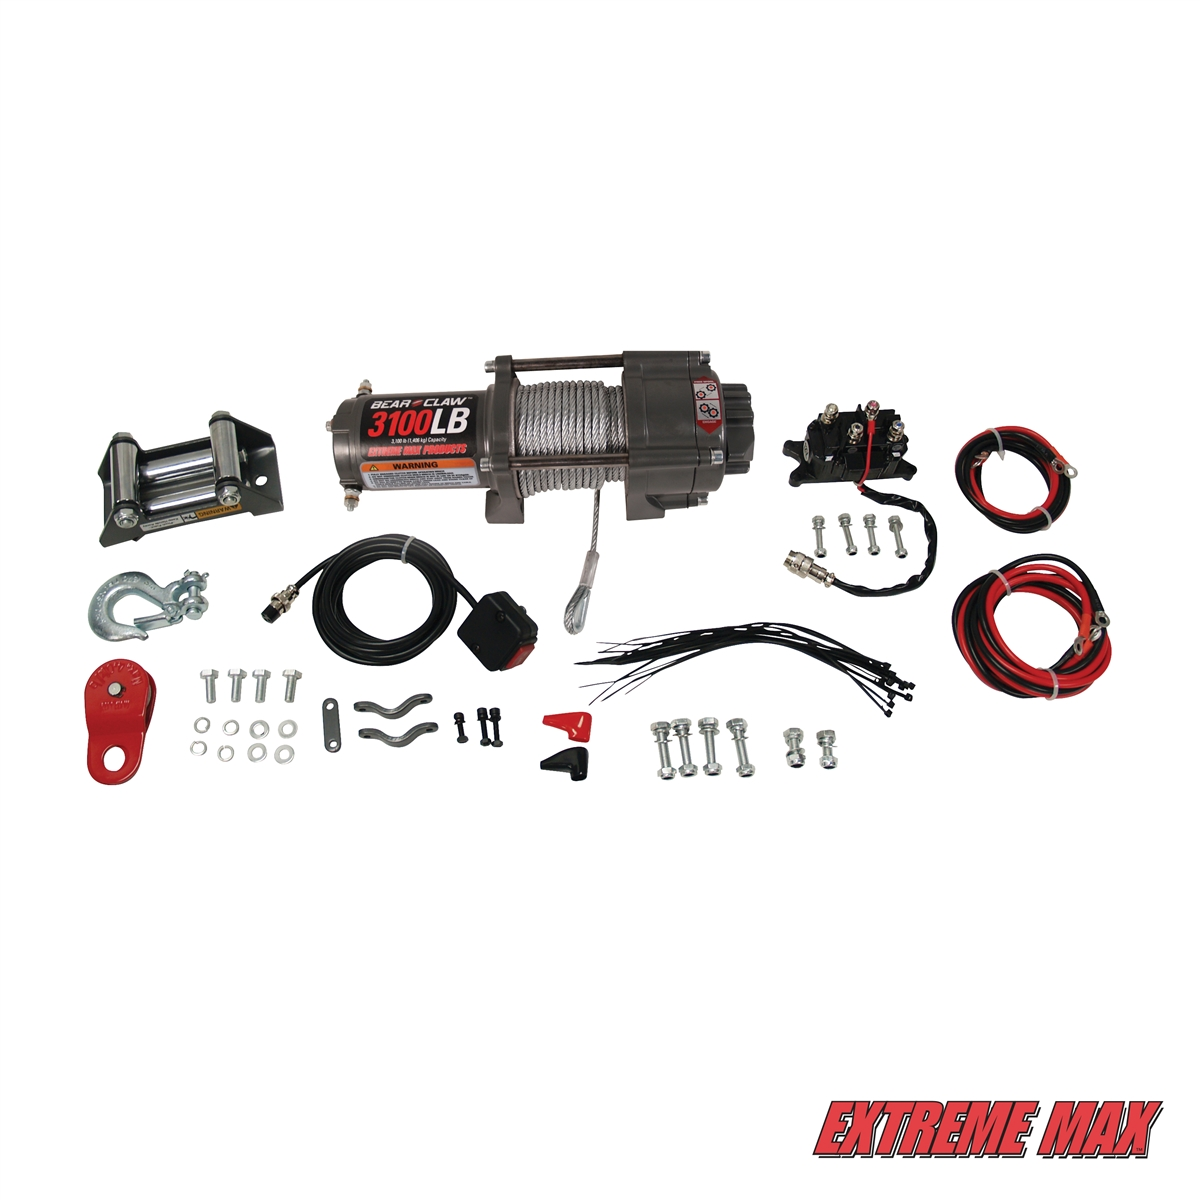 Extreme Max Complete Lb Winch Amp Quick